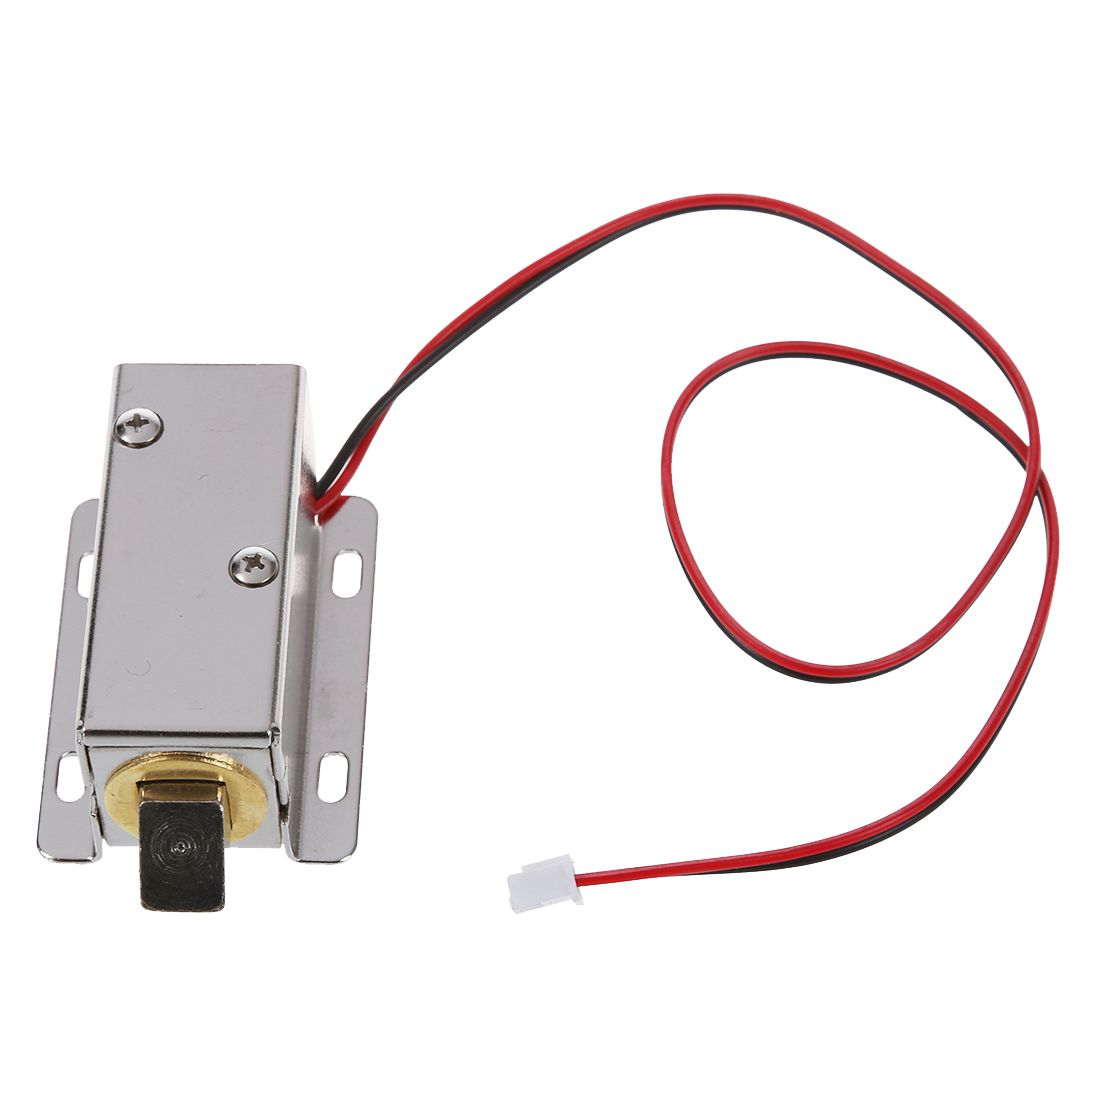 Electric Door Lock System Michaelieclark Automatic With 805189c5189c52 Microcontroller 0837l Dc 12v 8w Open Frame Type Solenoid For M2a5